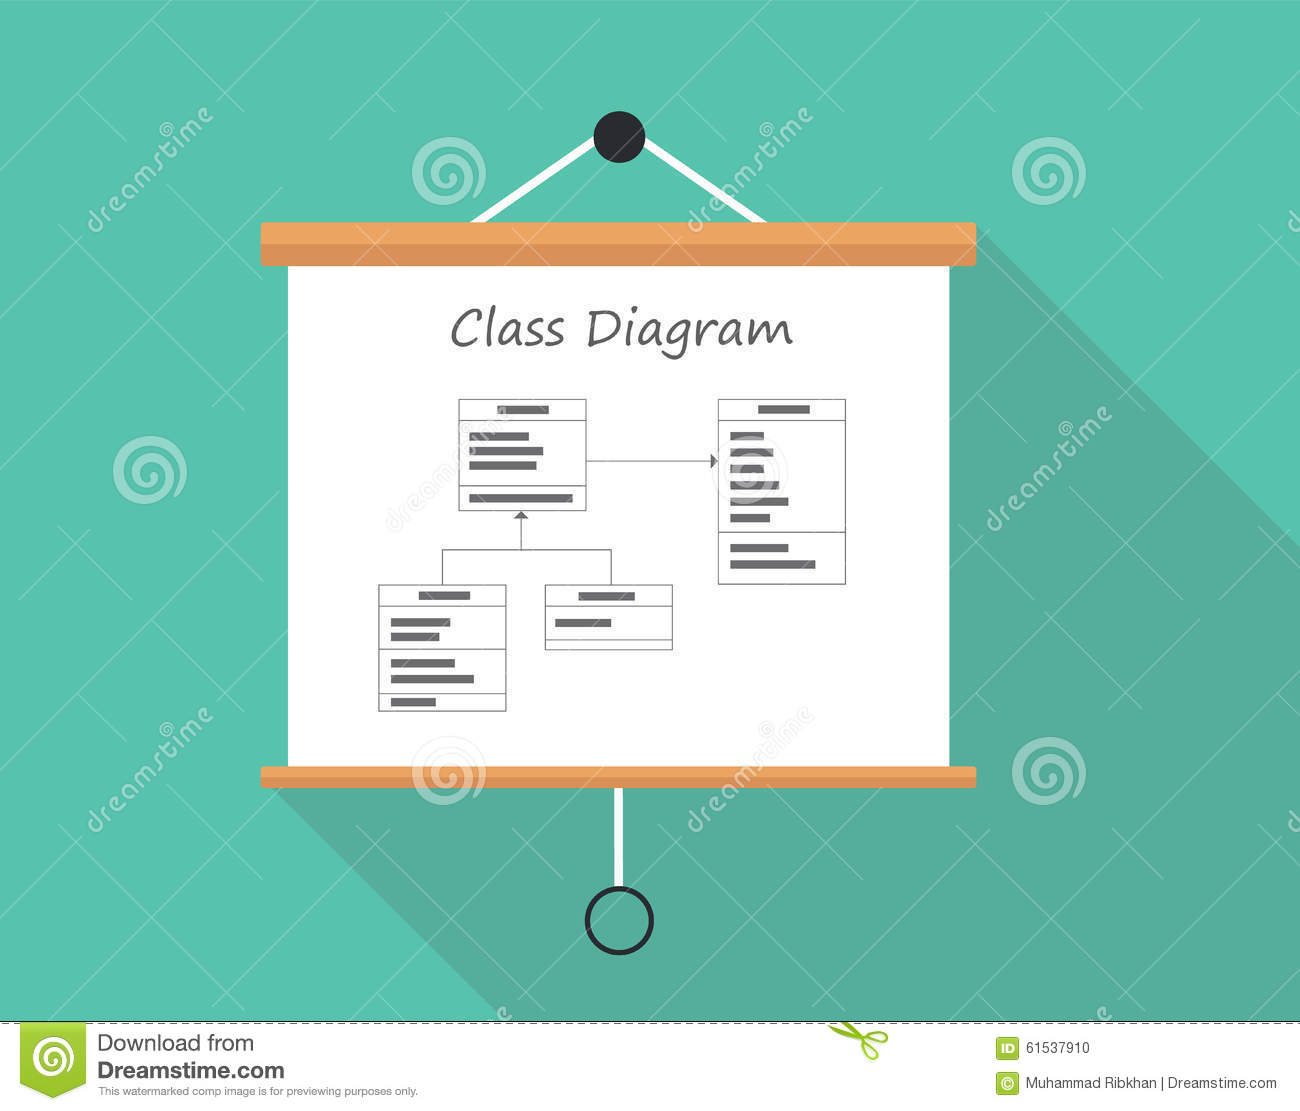 Uml Modeling Class Diagrams Data Model Prototype